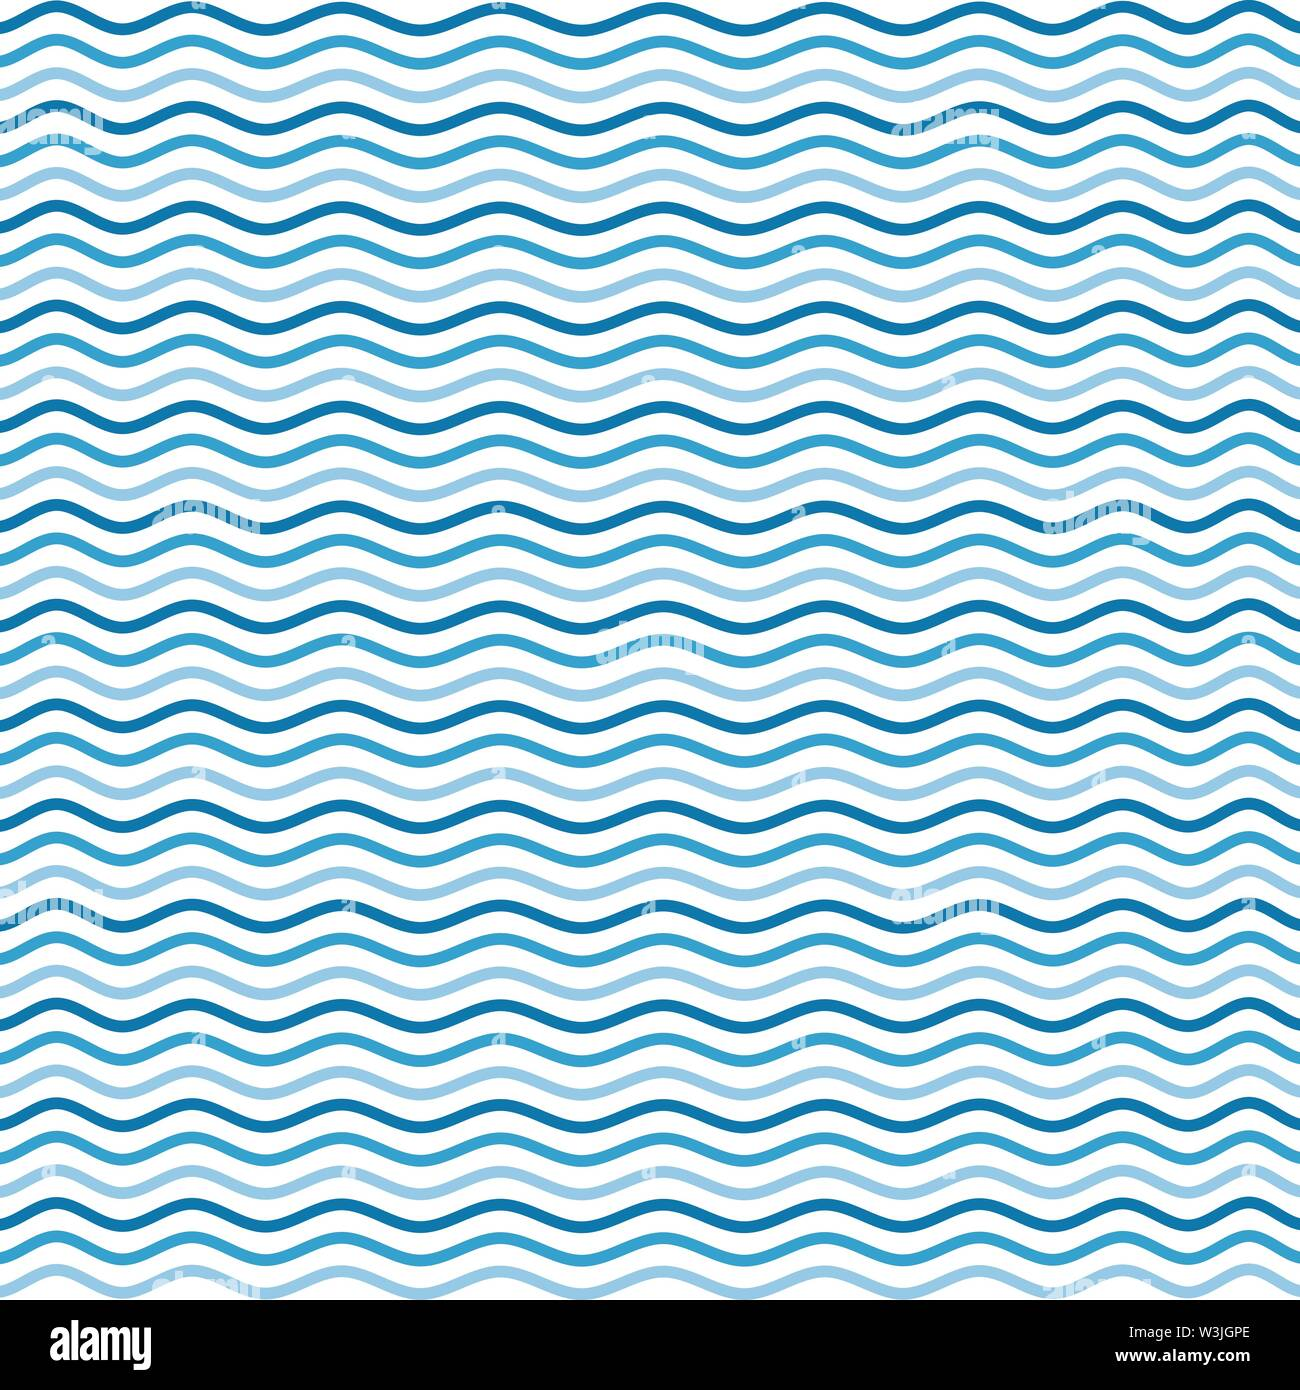 sea wave beach theme background pattern holiday vector art - Stock Image